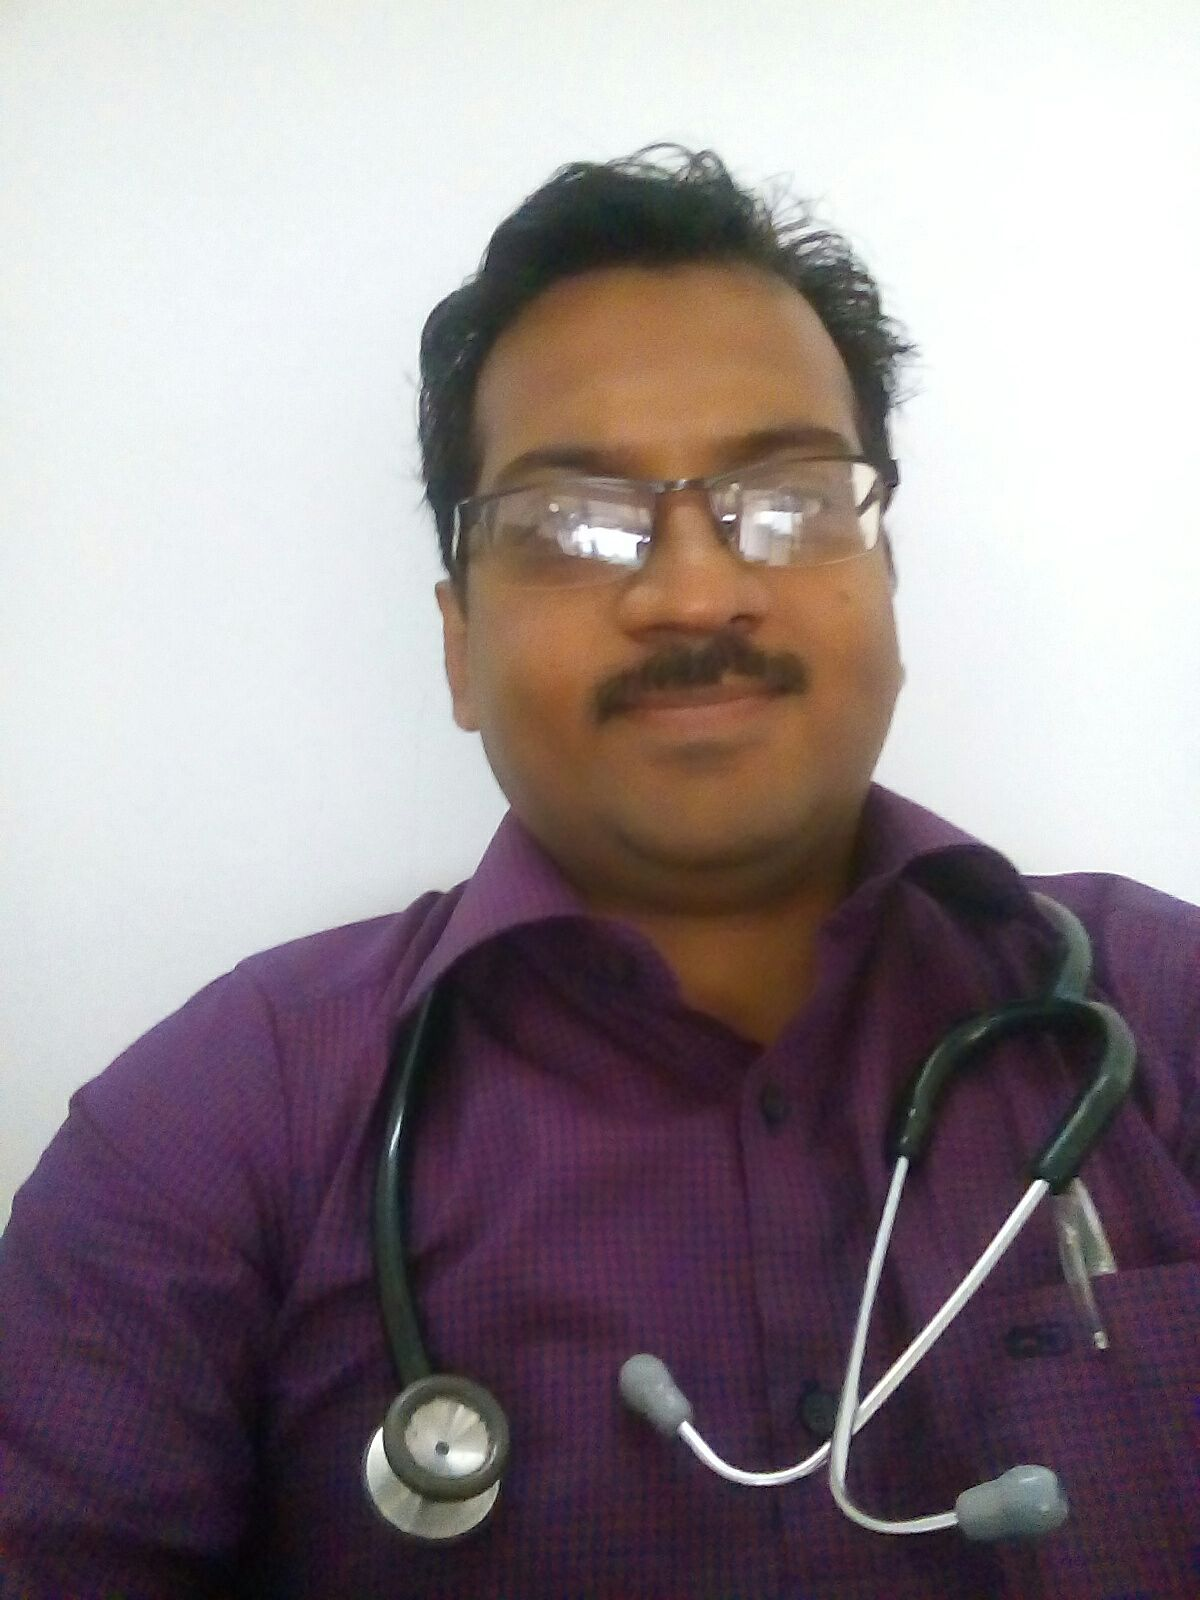 Vaccination Doctors in Chinchwad, Pimpri-Chinchwad - View Cost, Book